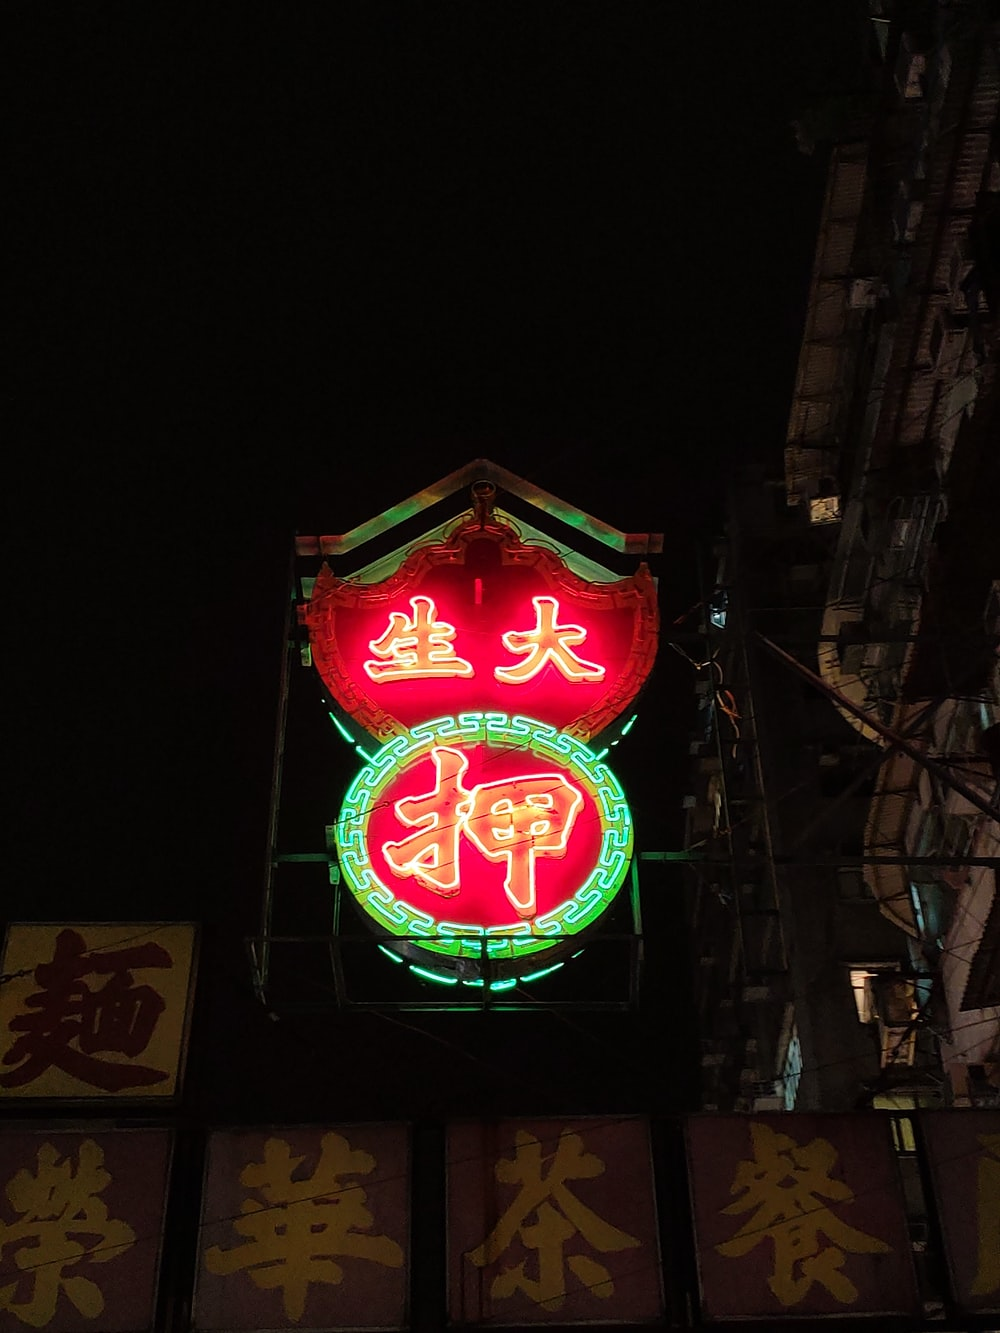 red and green kanji LED lights